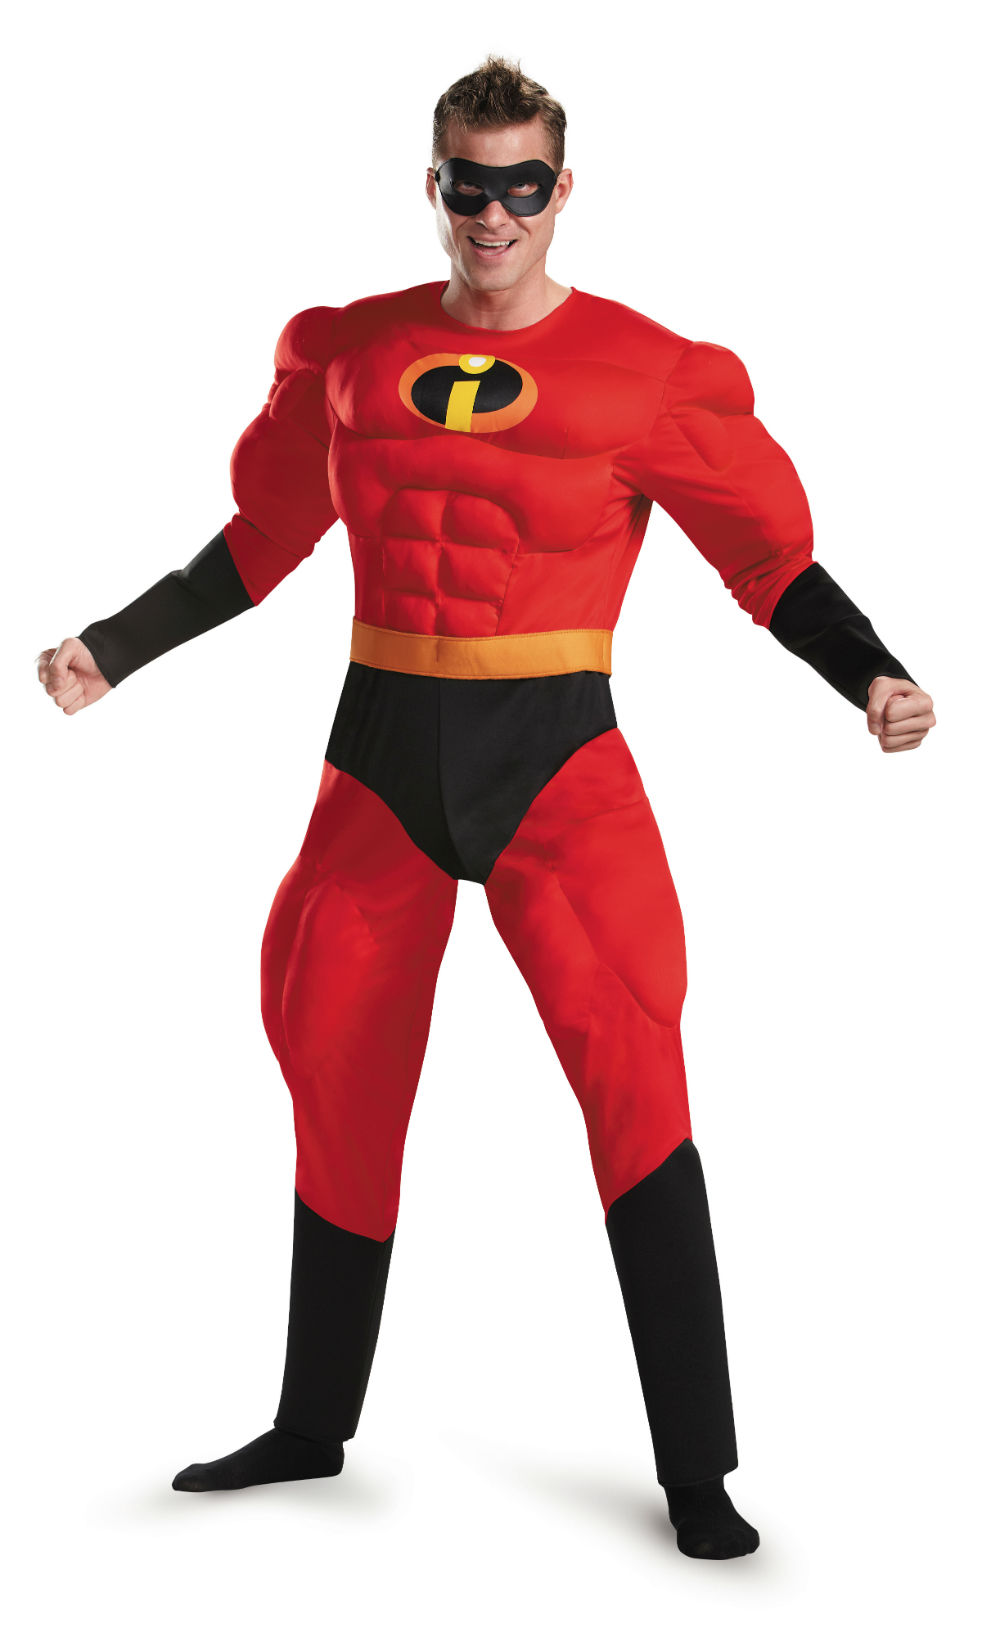 Costumes, Accessories, Party Supplies & More - Cappel's